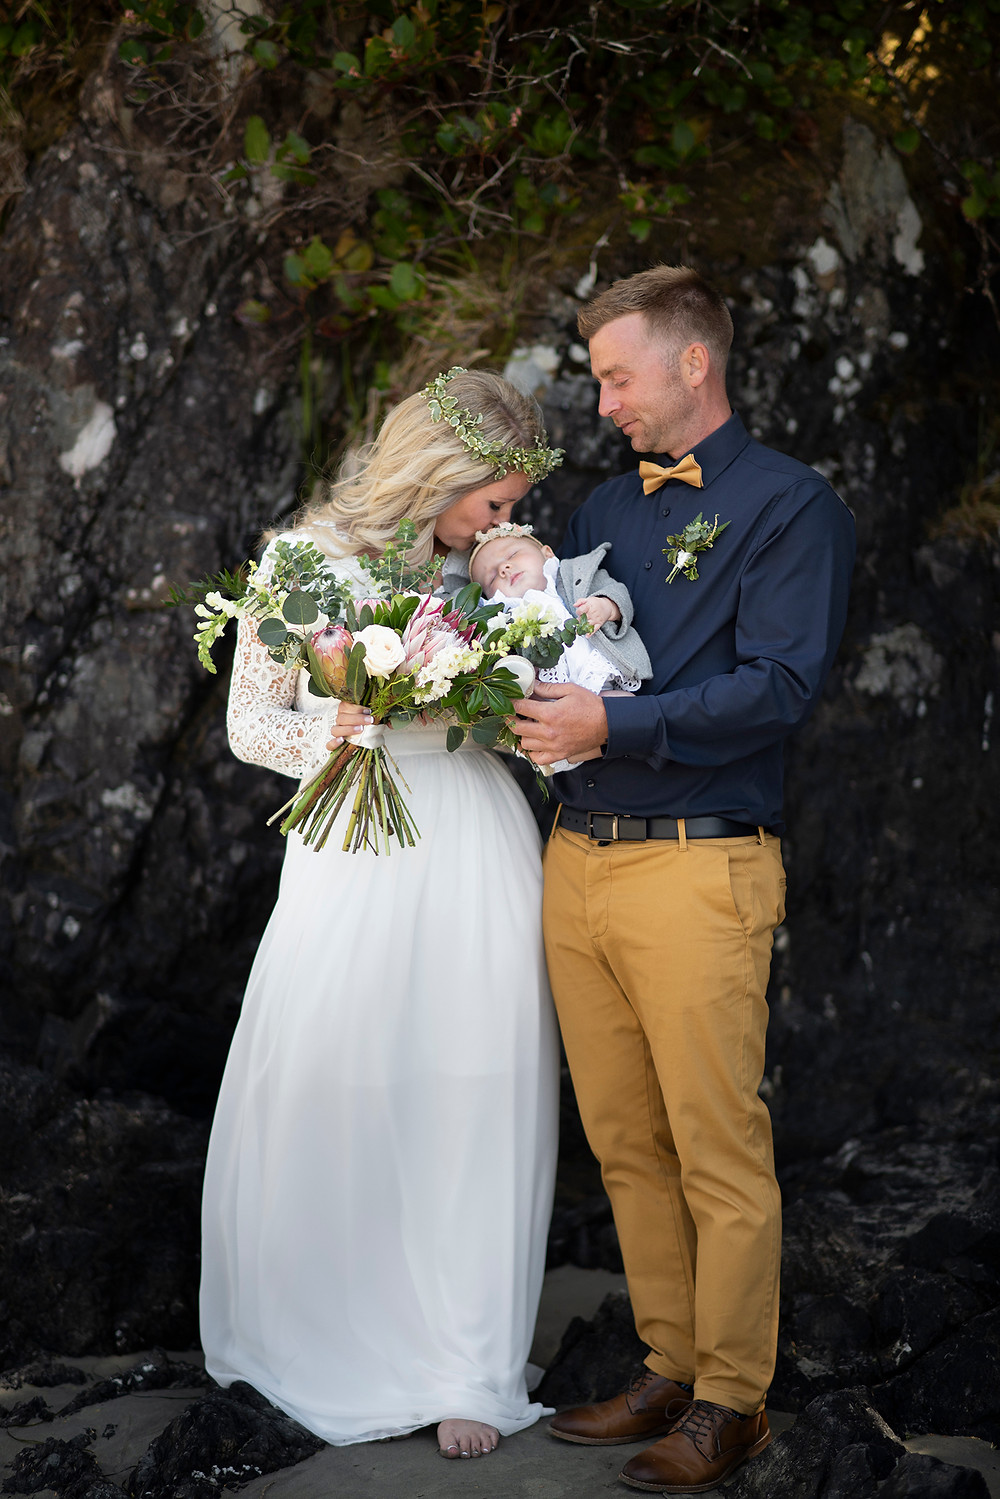 boho wedding dress at Tofino beach wedding. Photographed by Kaitlyn Shea